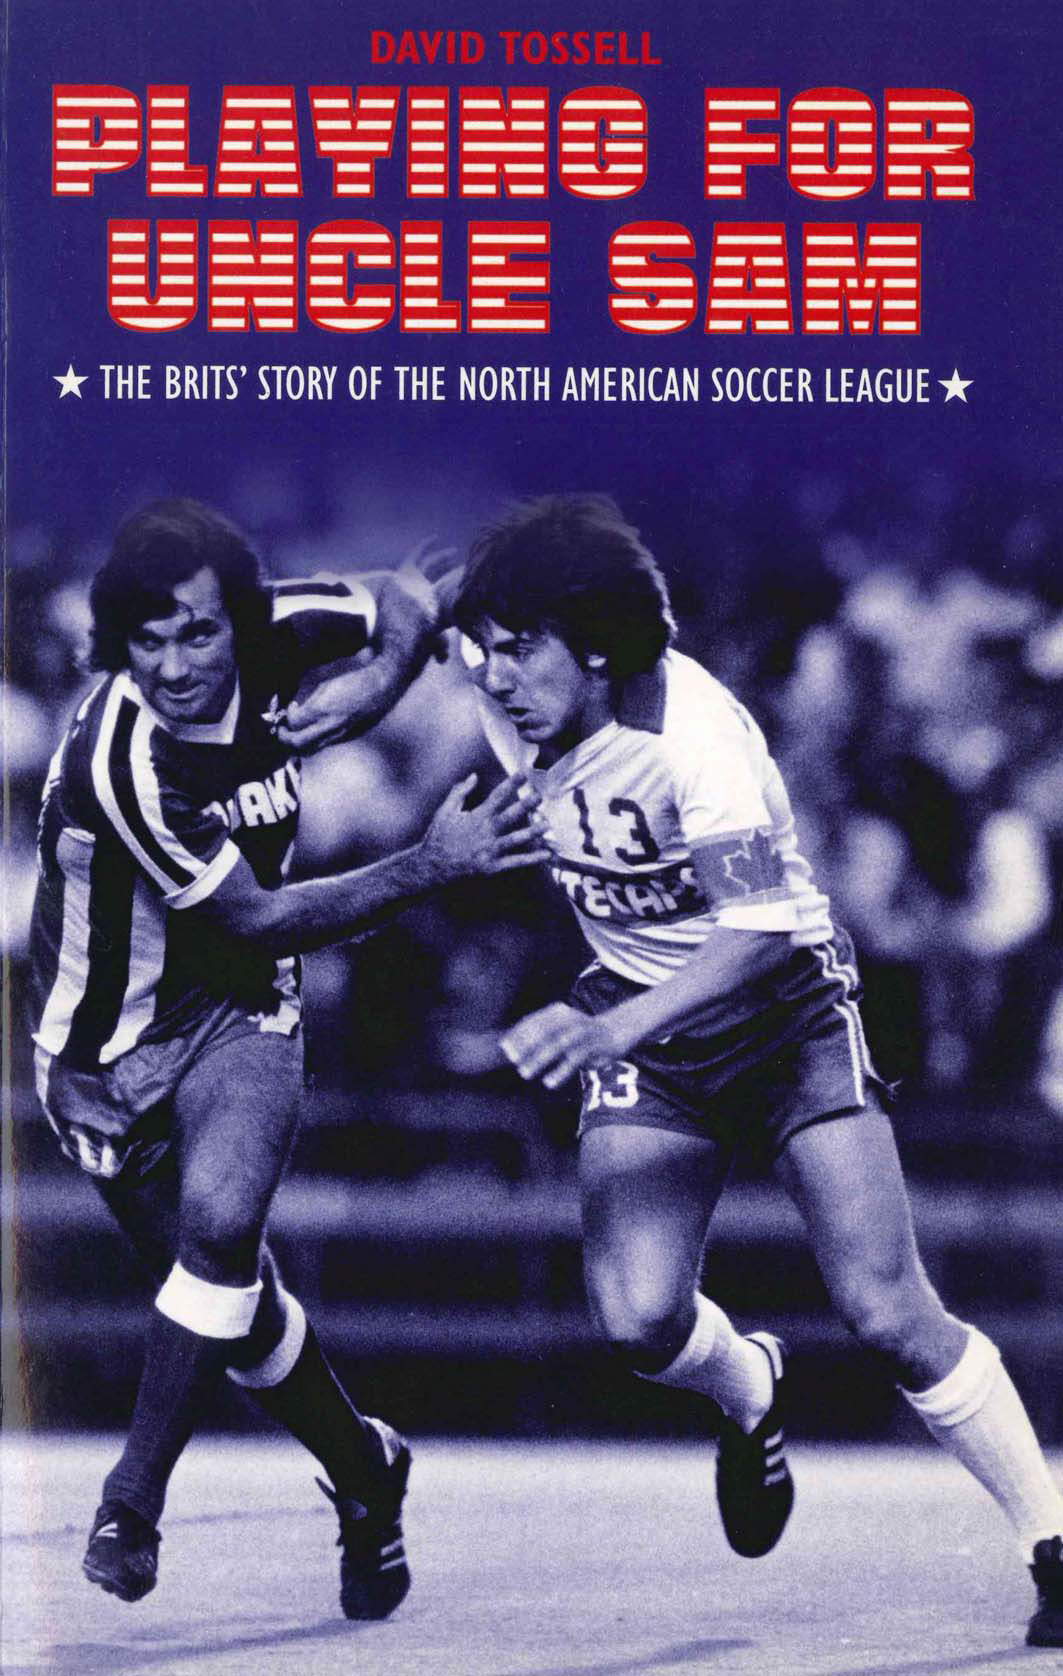 Playing for Uncle Sam The Brits' Story of the North American Soccer League